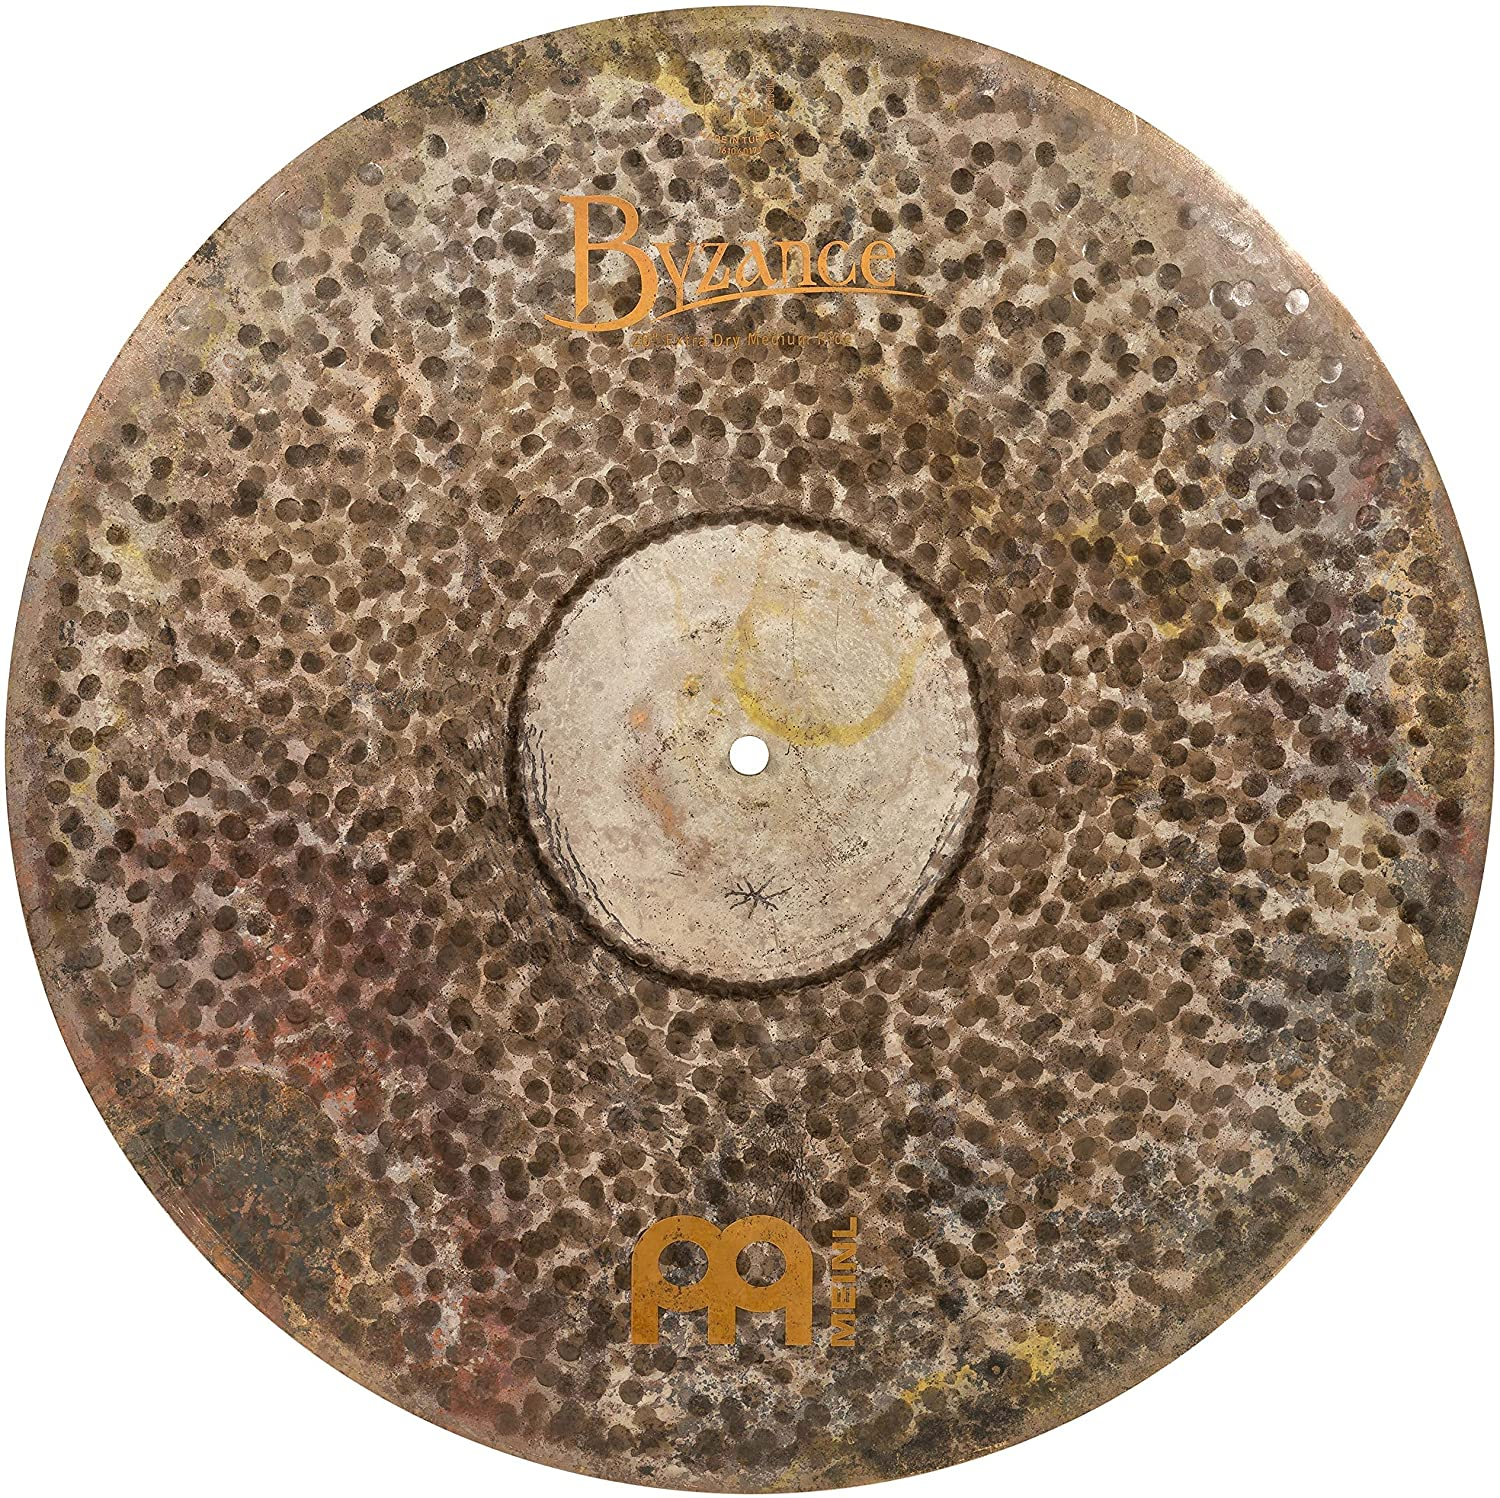 Meinl Byzance 20 Inch Extra Dry Medium Ride